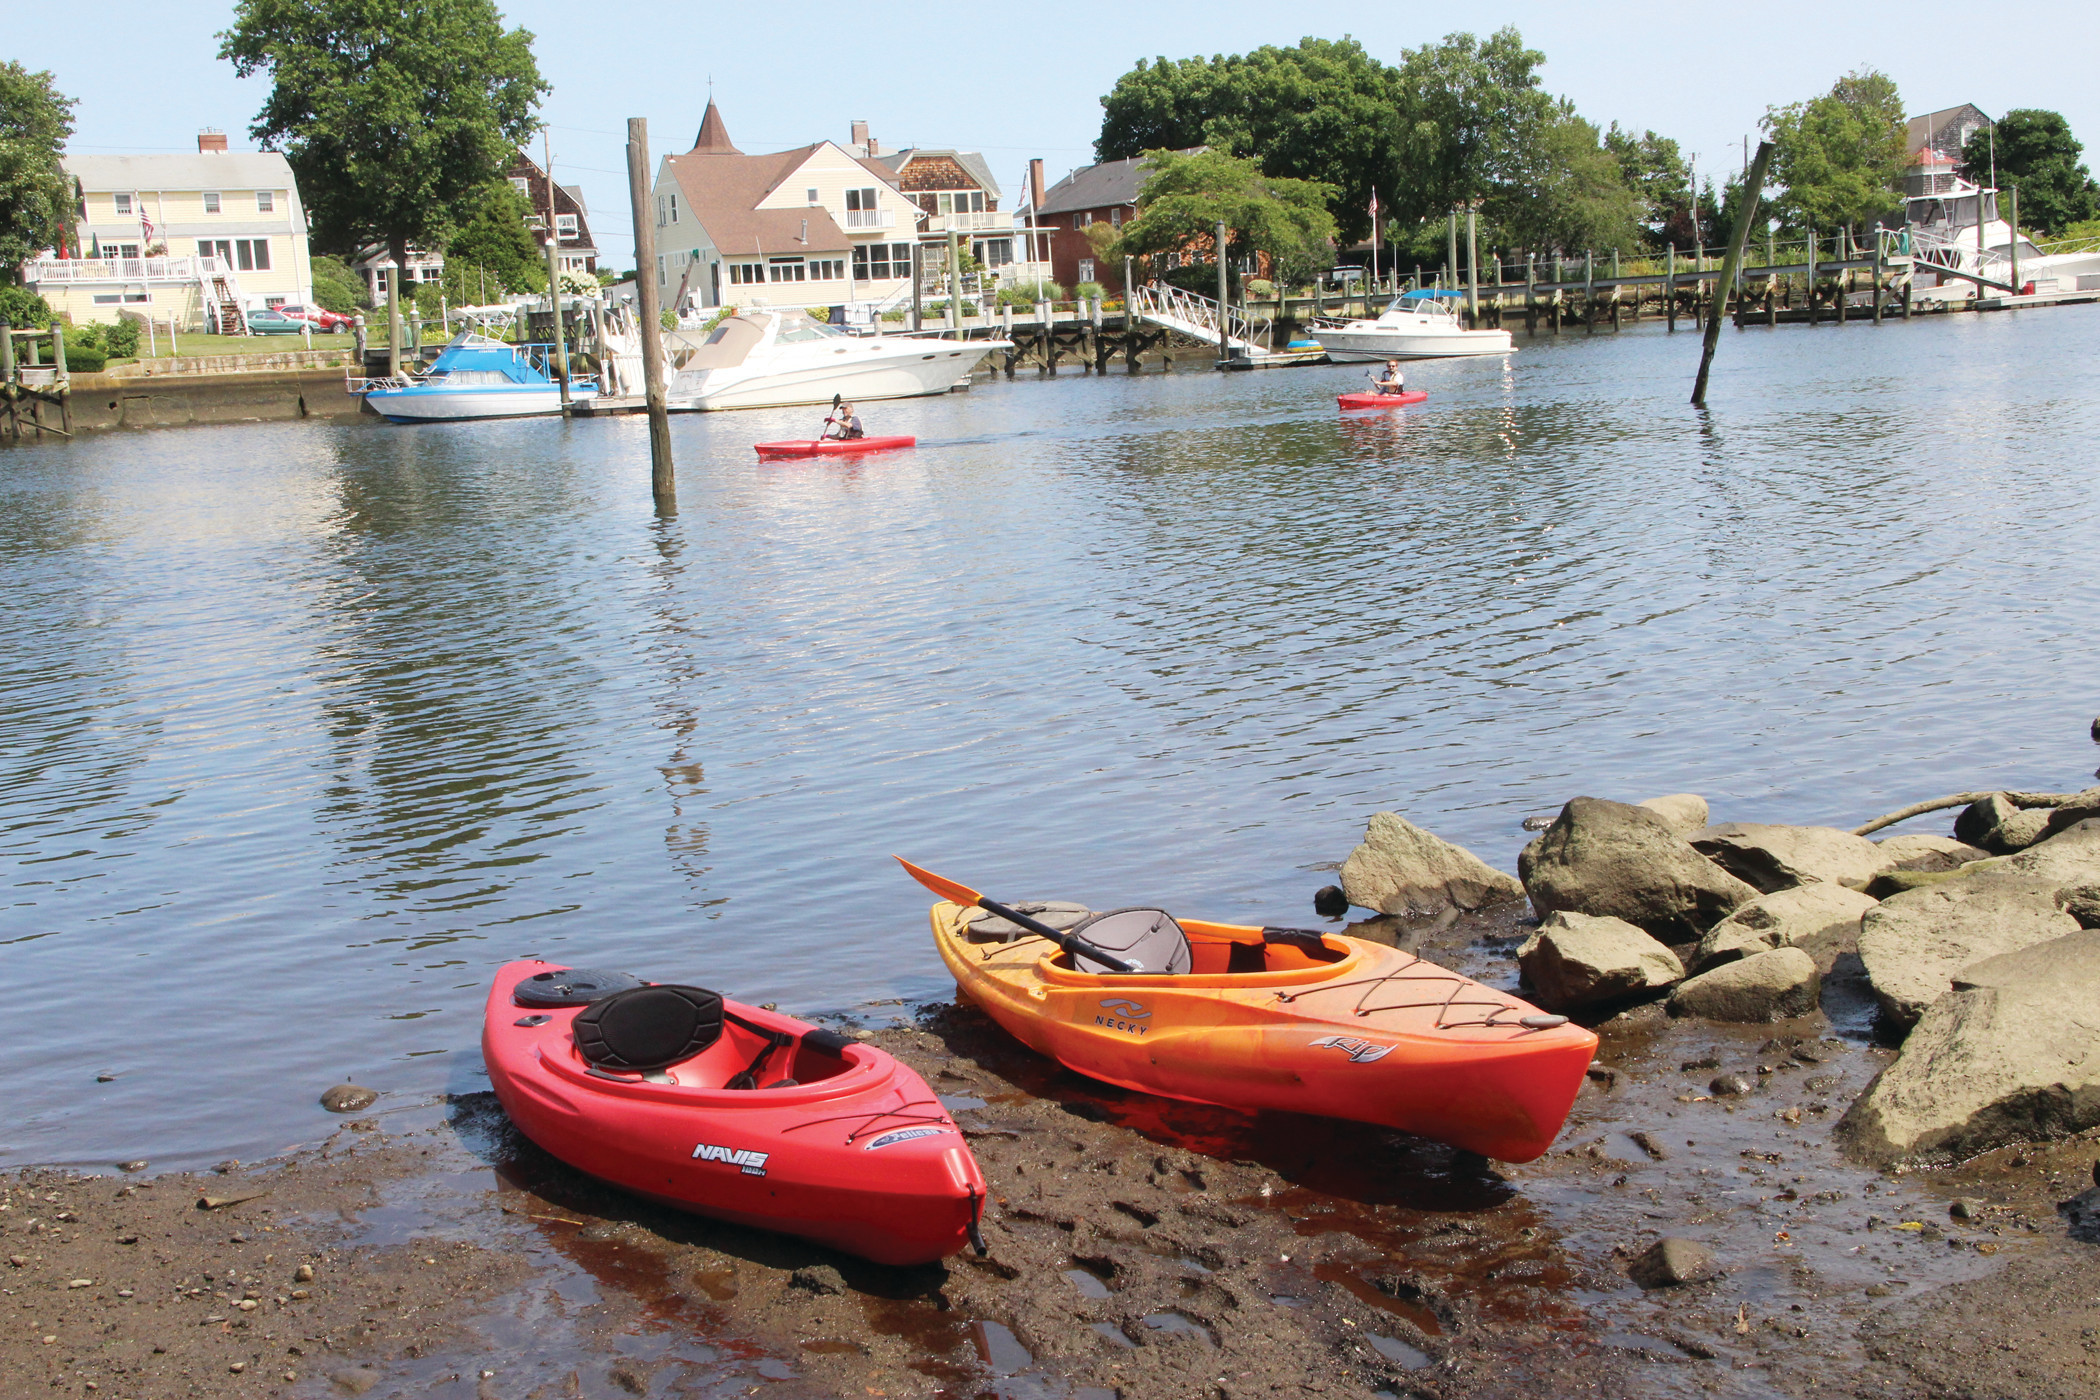 VILLAGE BEAT: A Sunday stroll through Pawtuxet Village found an active community with live music at the Pawtuxet Athletic Club, a birthday at Aspray Boathouse and people on the water.